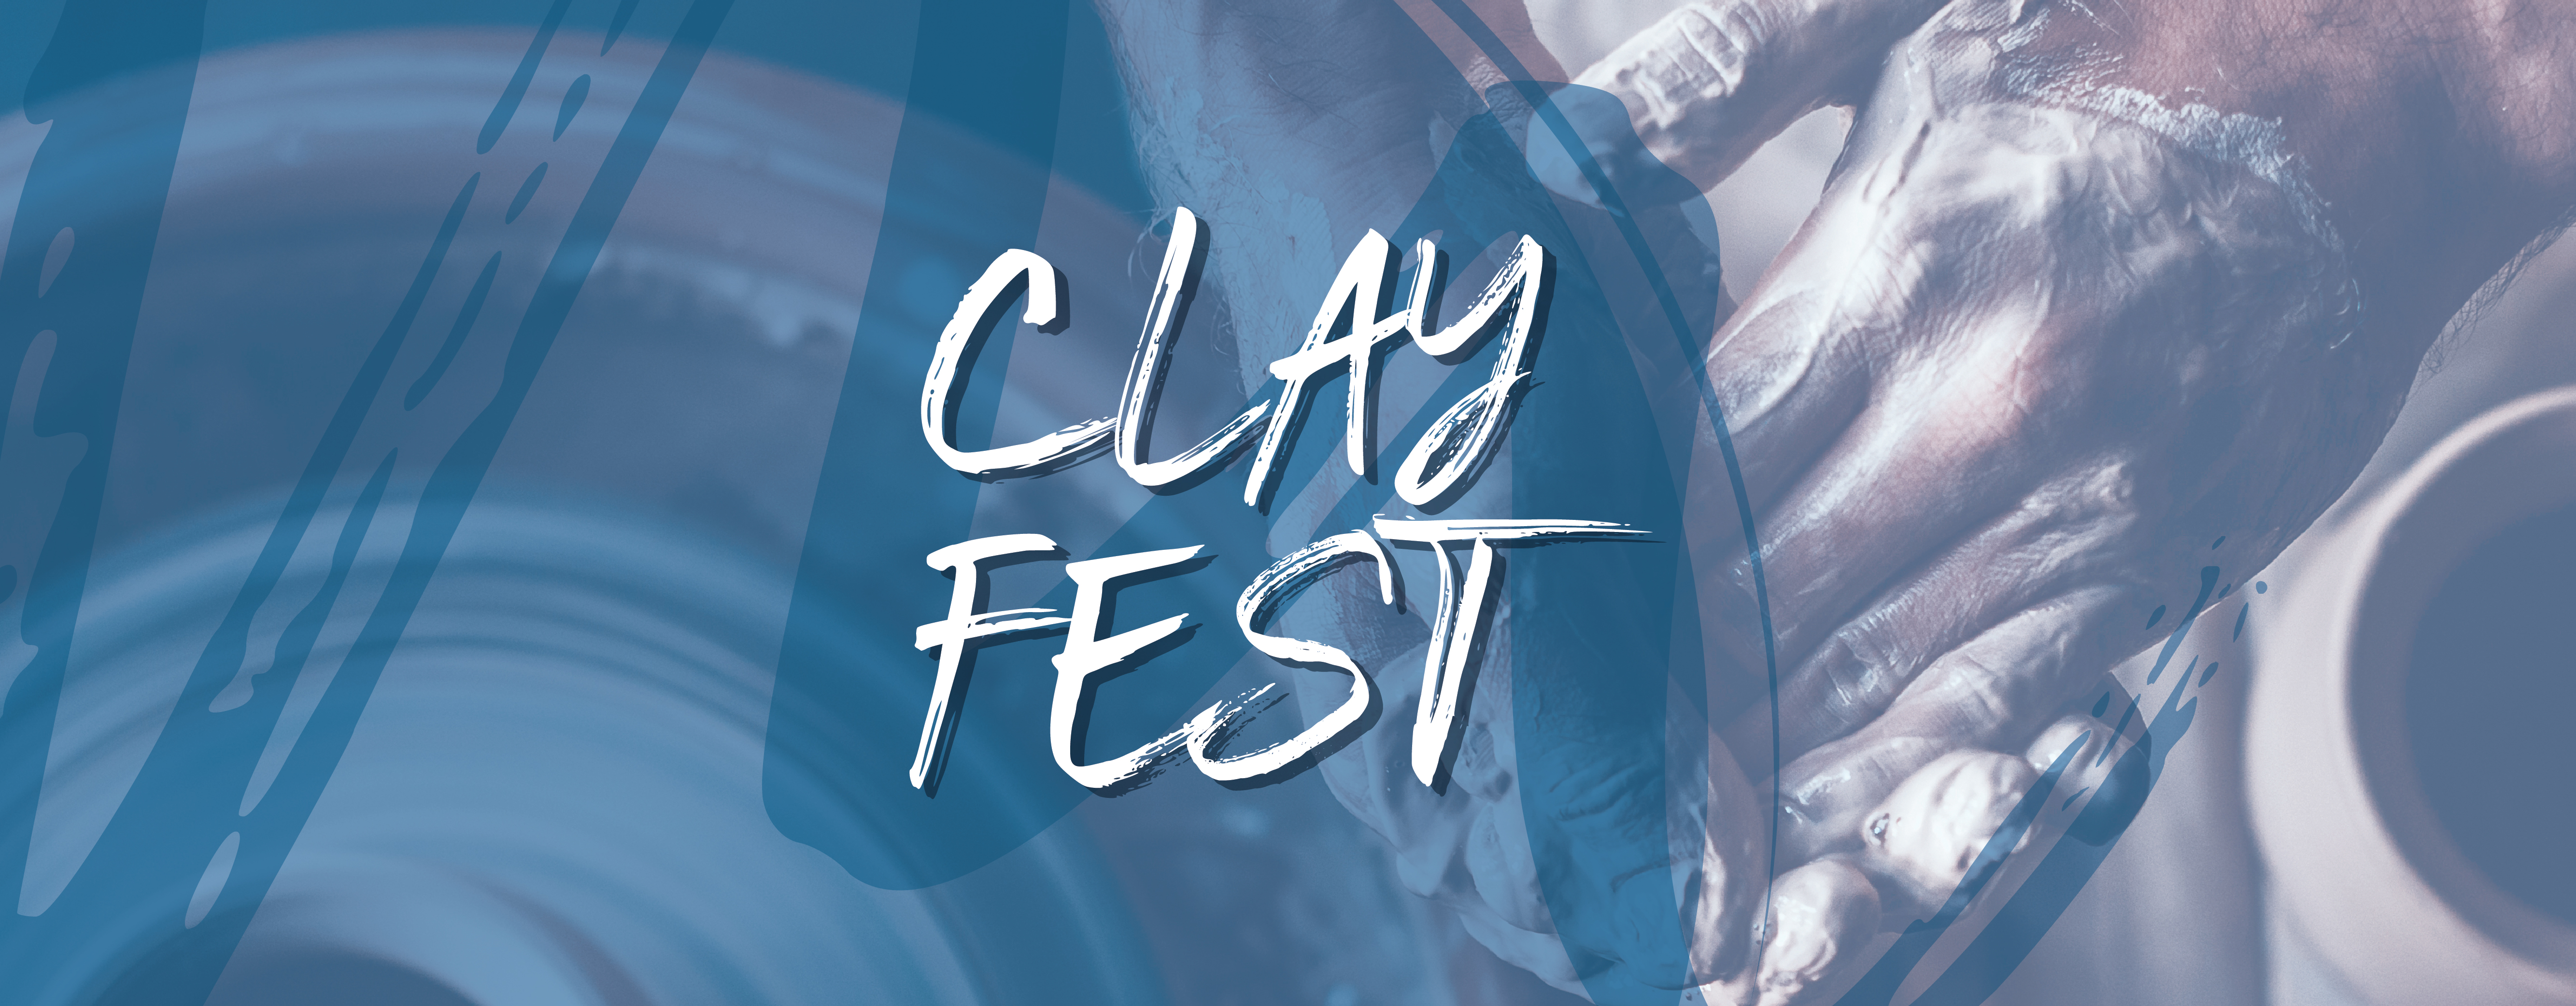 Clay Fest banner with photo of hands working with clay